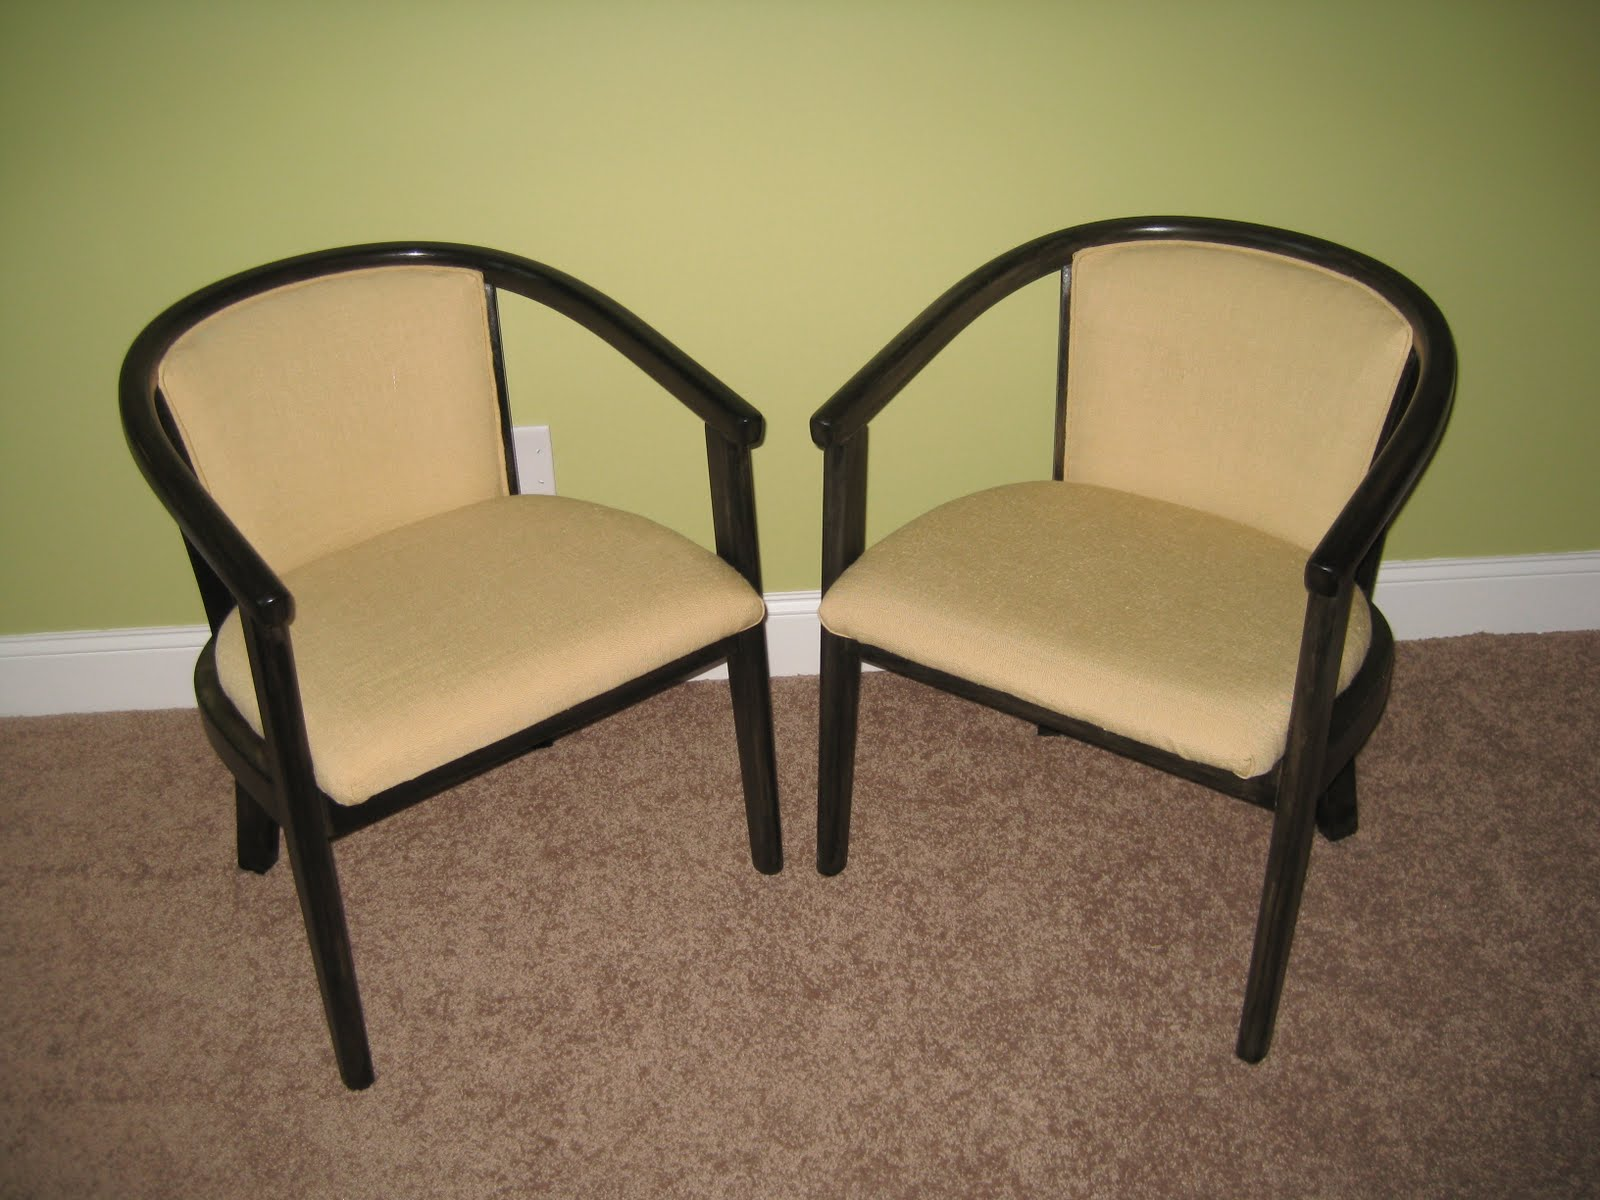 Chairs For Sale Craigslist Outdoor On Love Island Only From Scratch 15